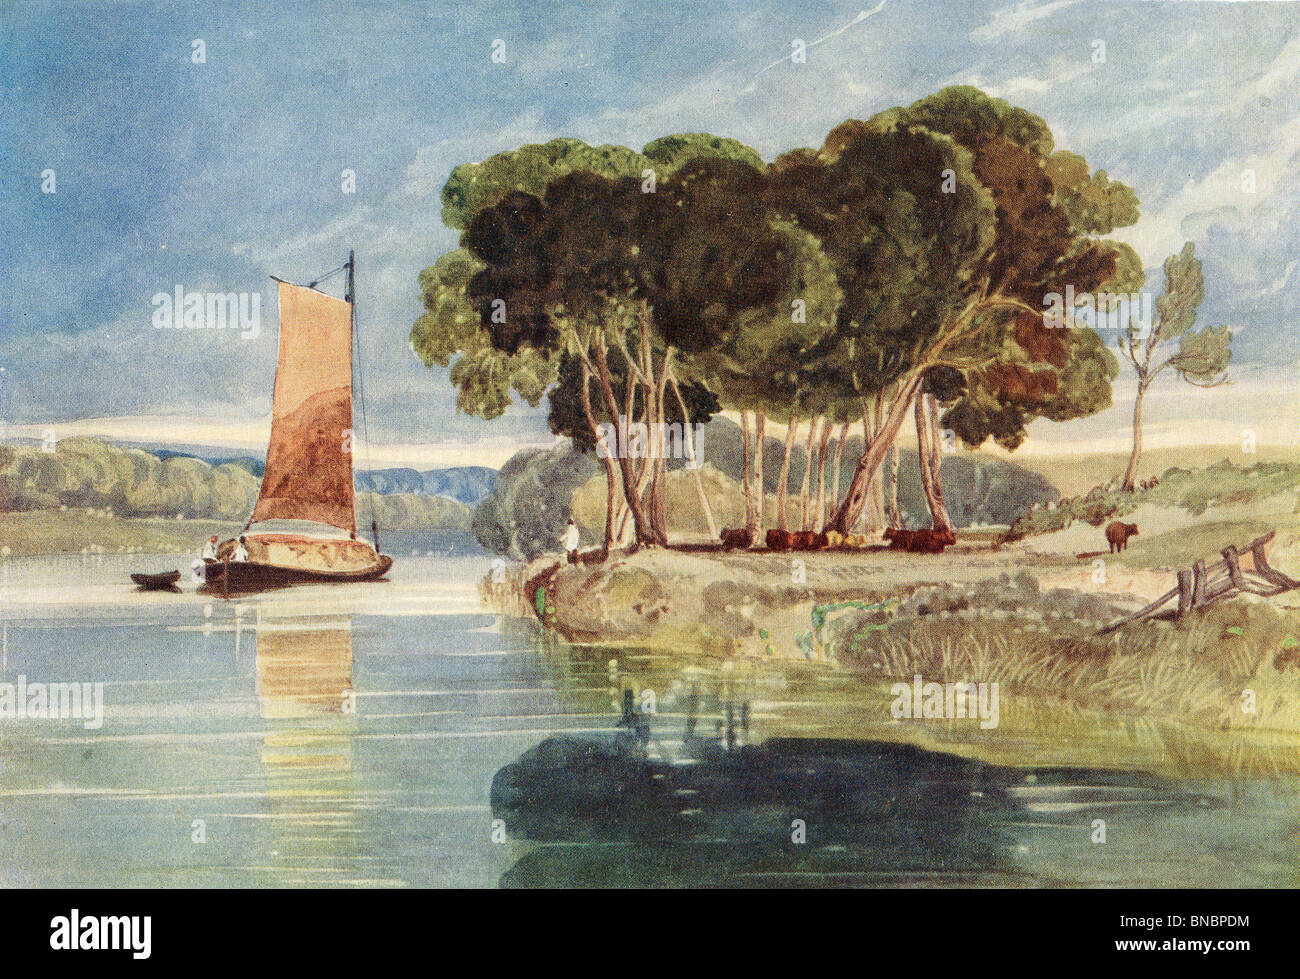 A River Scene - Stock Image